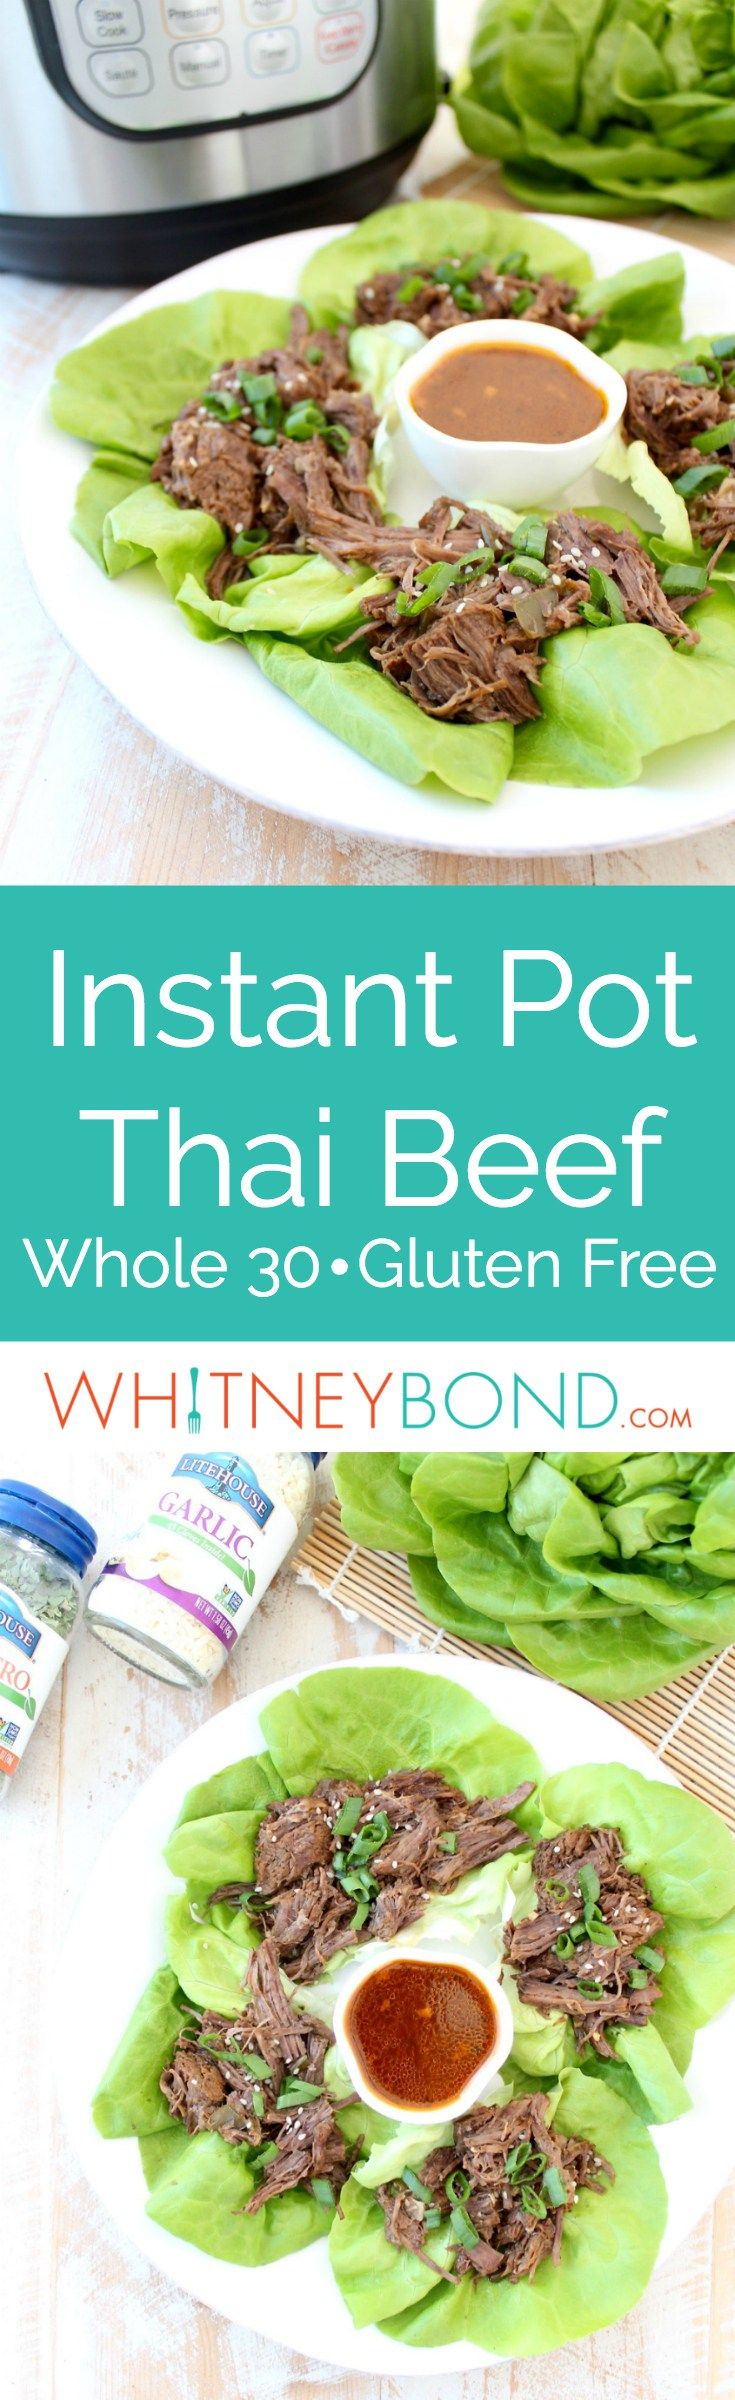 25+ best Thai Recipes images on Pinterest | Asian food recipes ...